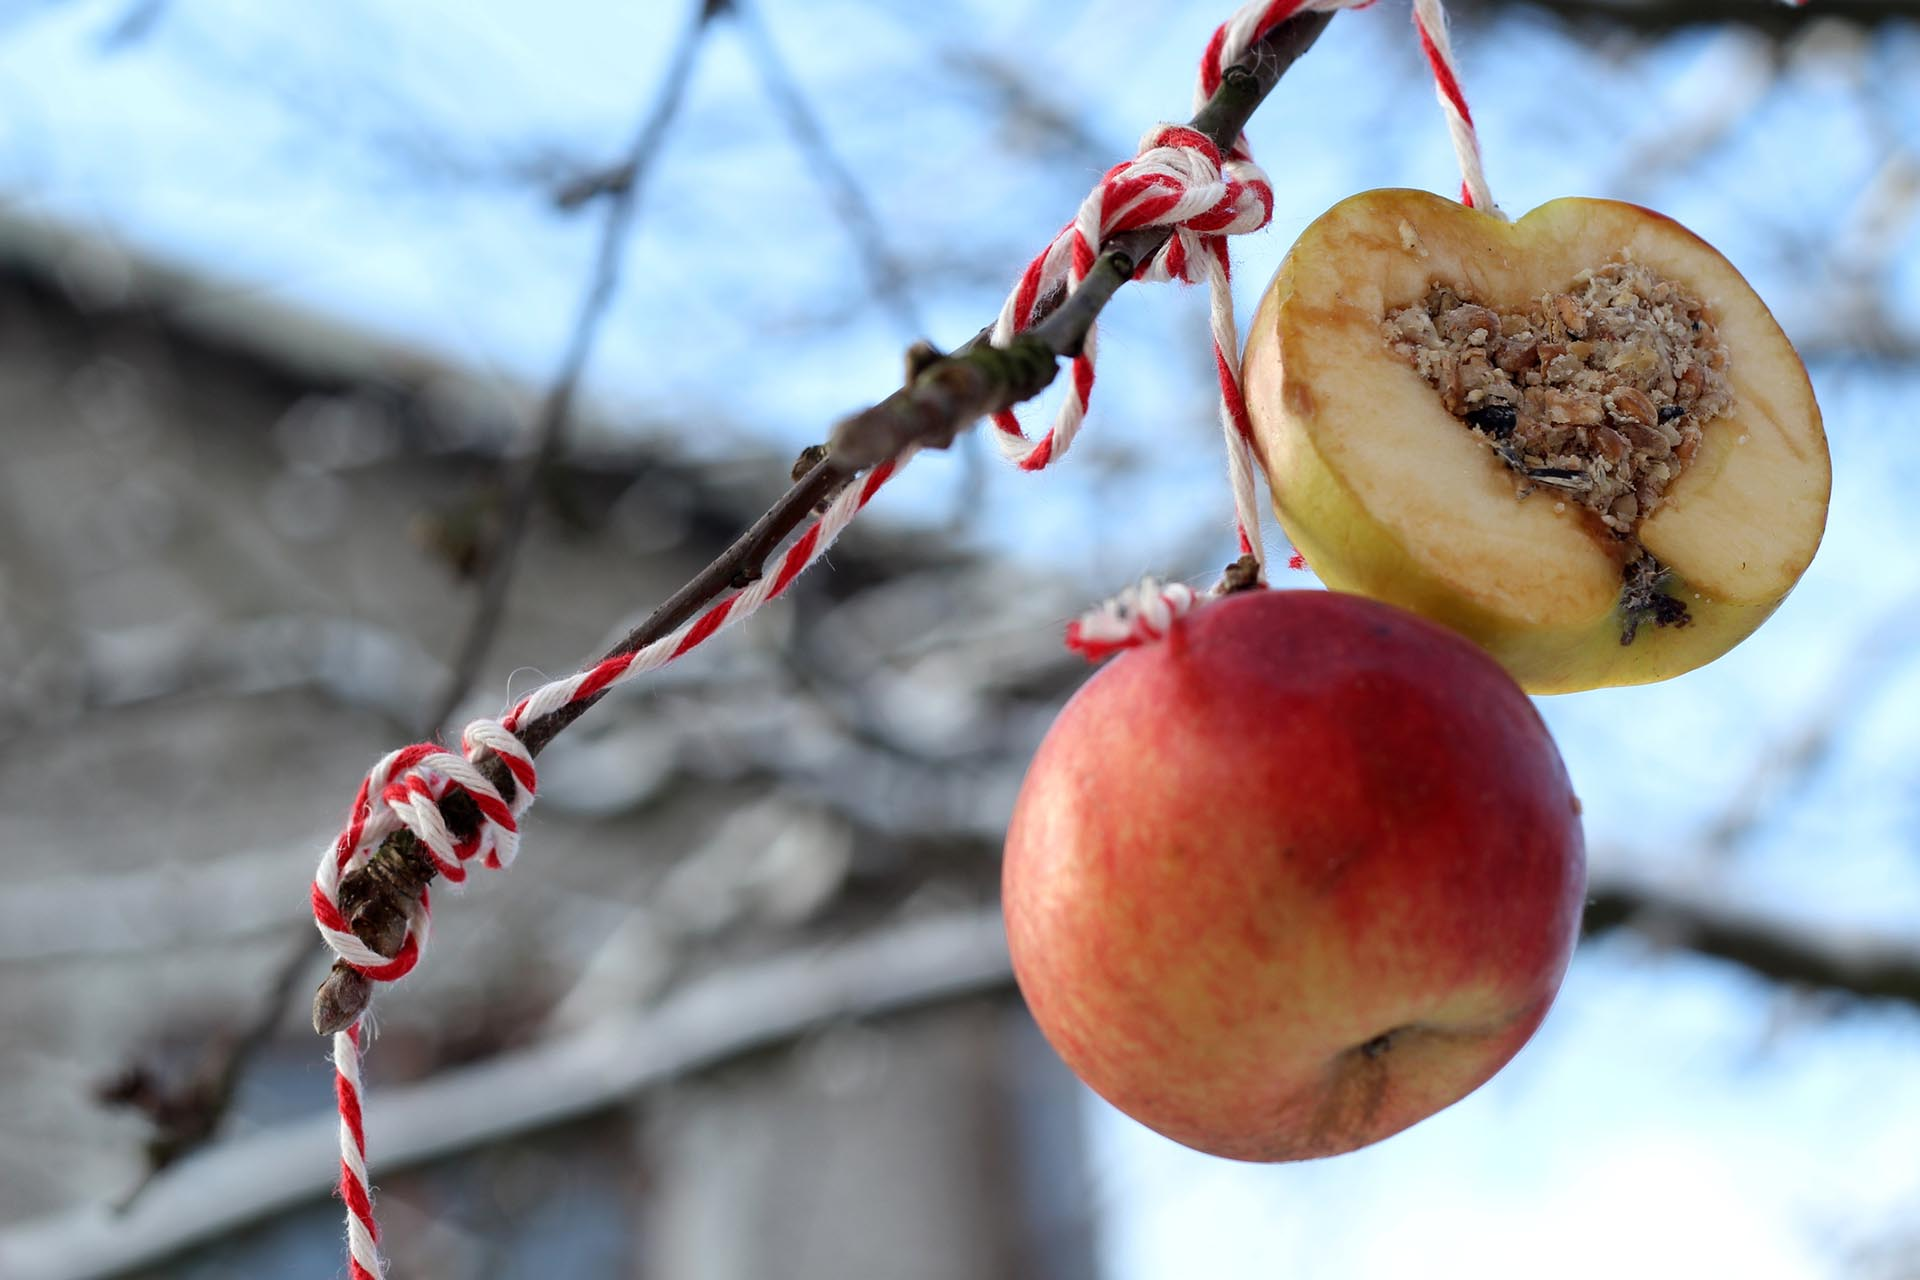 A homemade hanging suet made from an apple hanging from a tree branch.